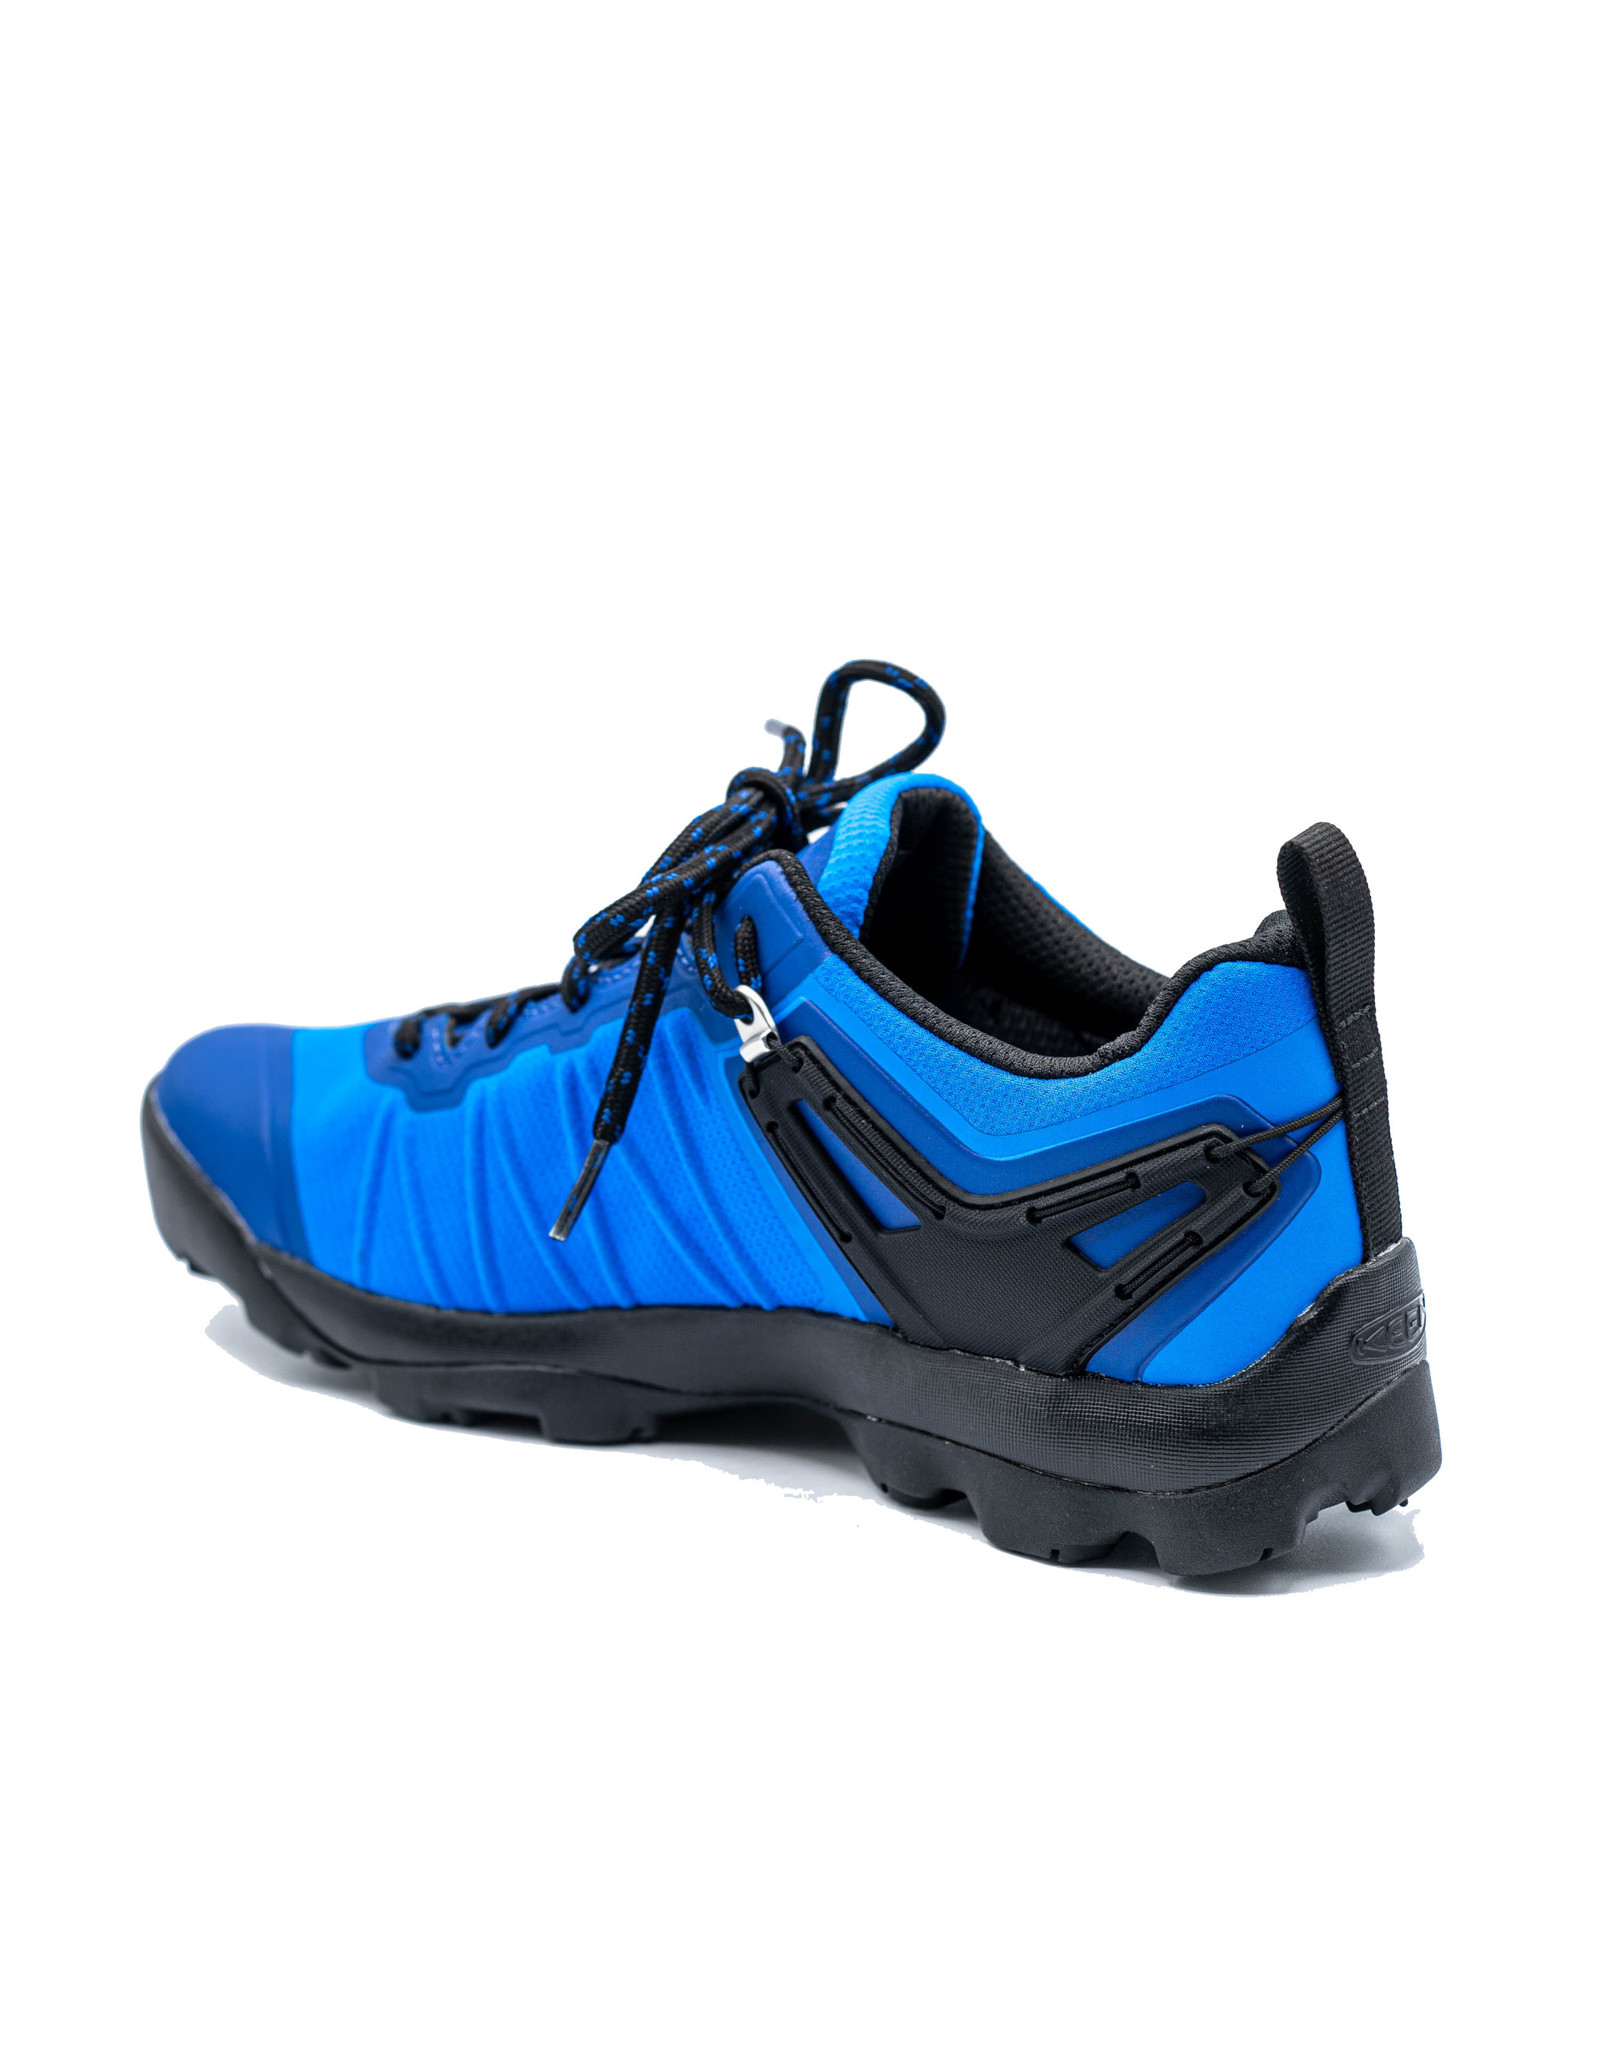 KEEN Venture Waterproof - Bleu Galaxy